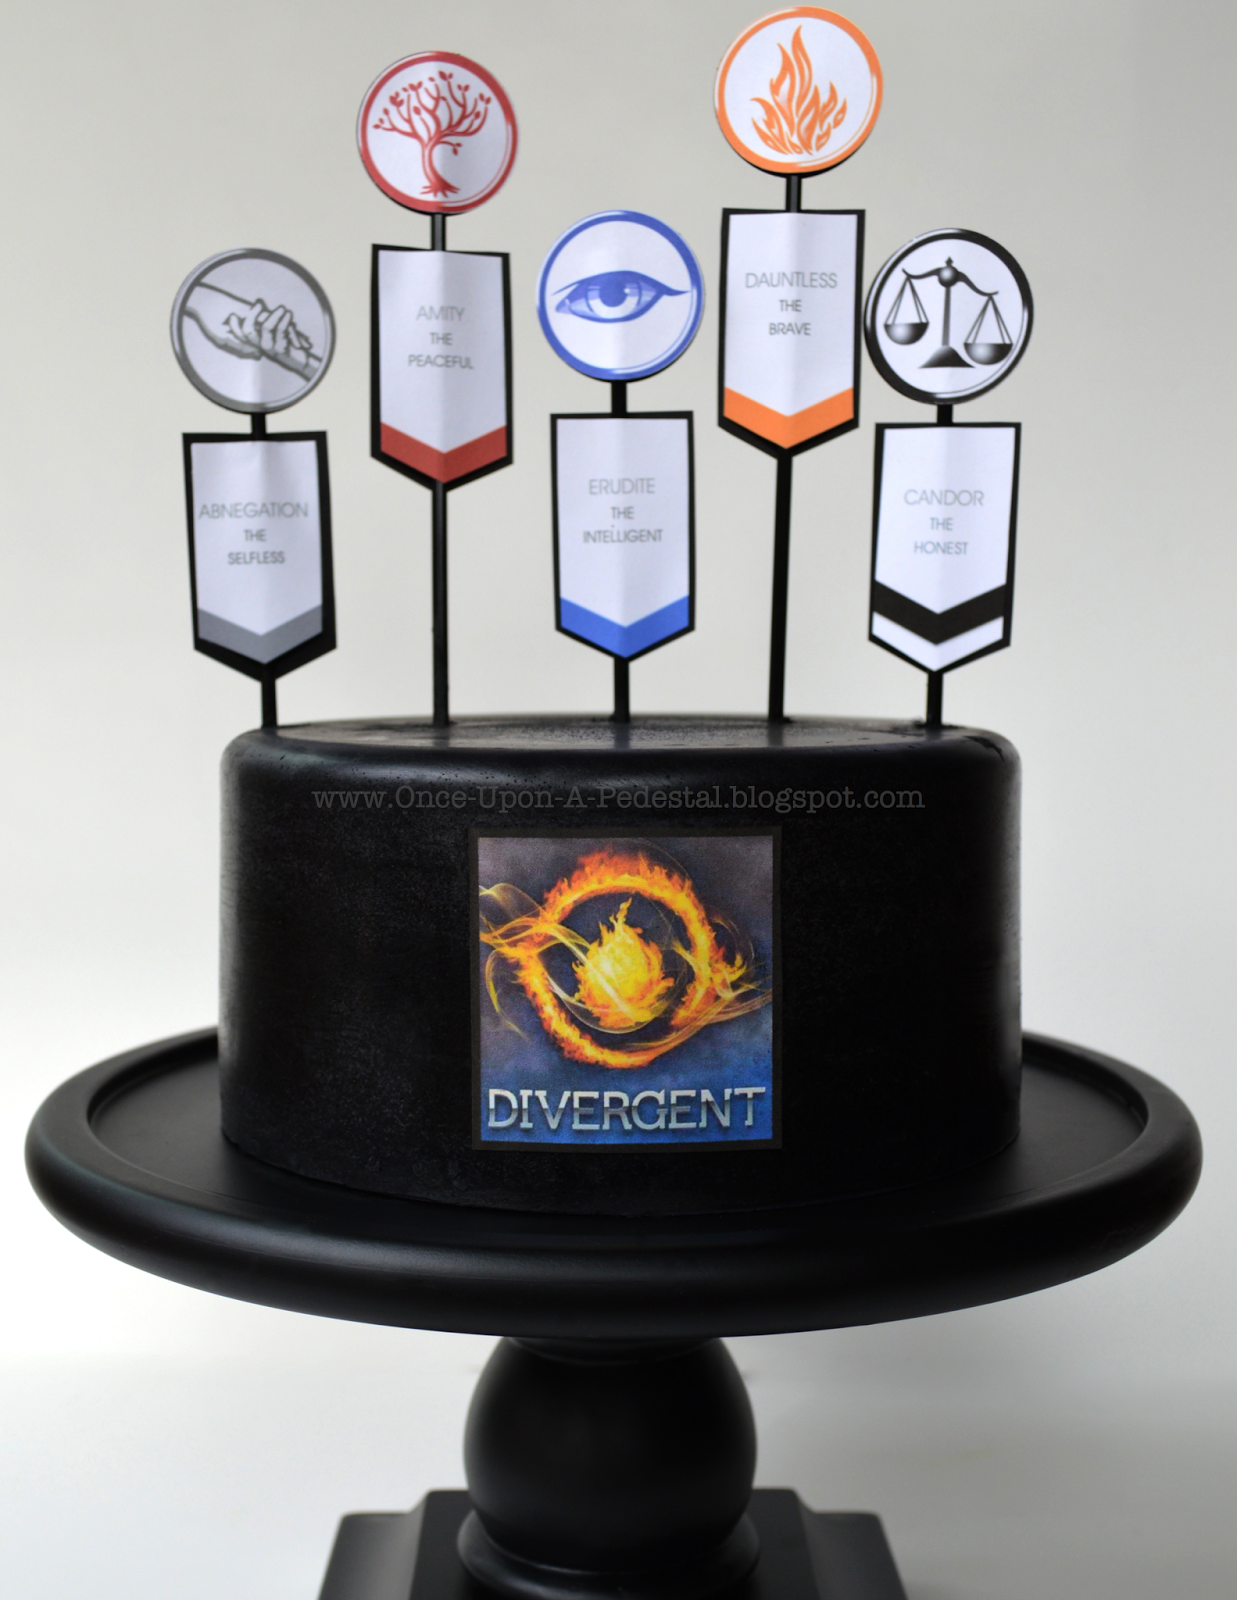 An Old Friend Was Visiting Recently And Shared That Her Daughter Lauren Longing For A Divergent Cake Birth